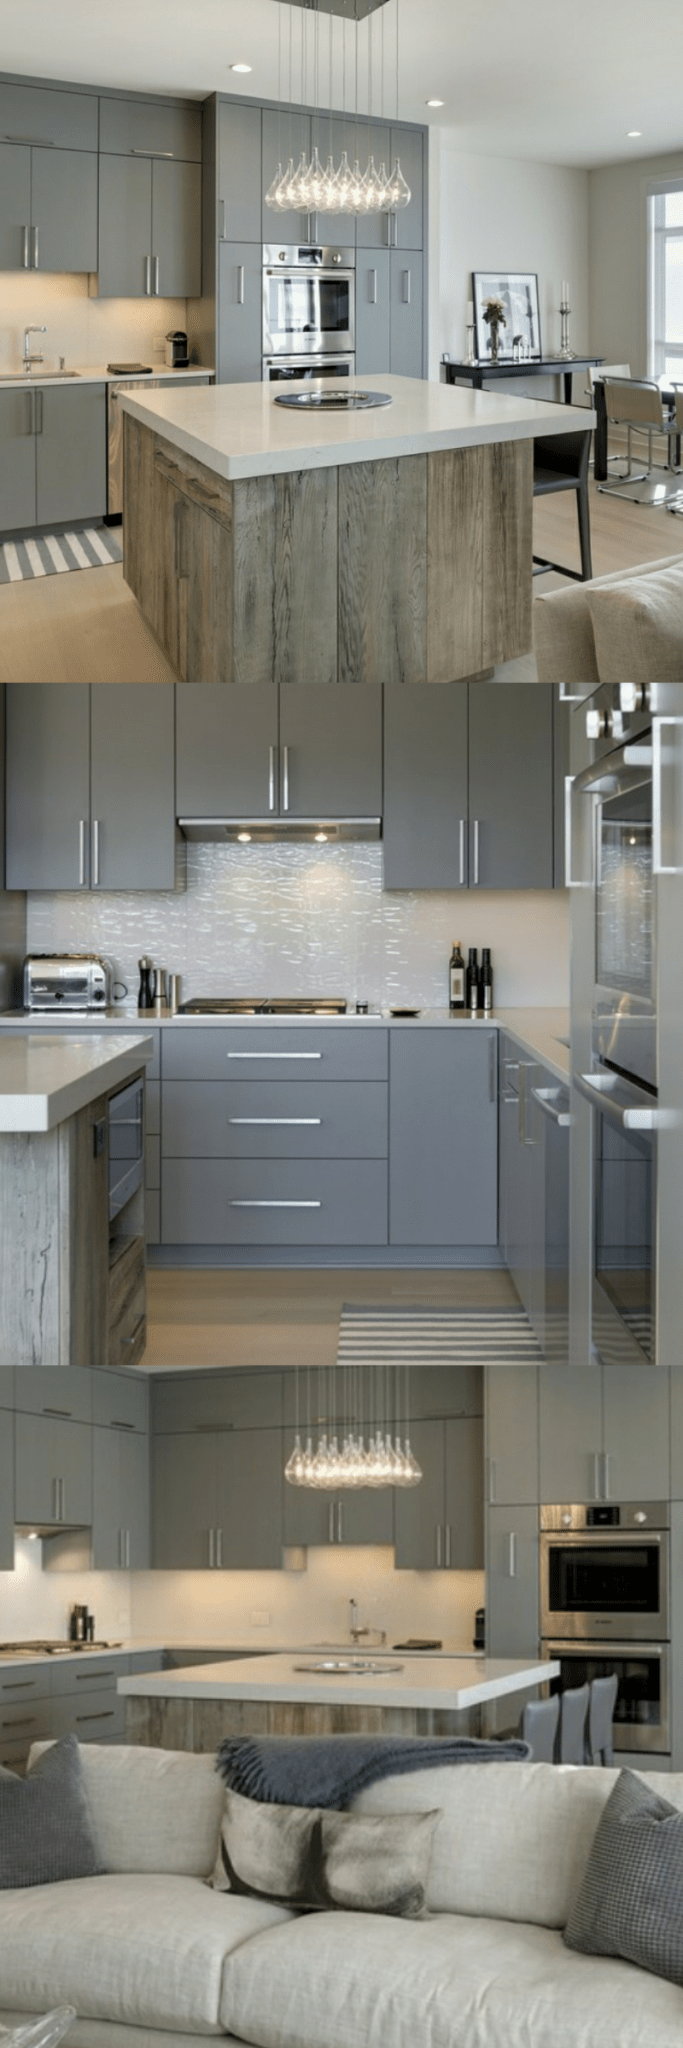 gray cabinets what color walls